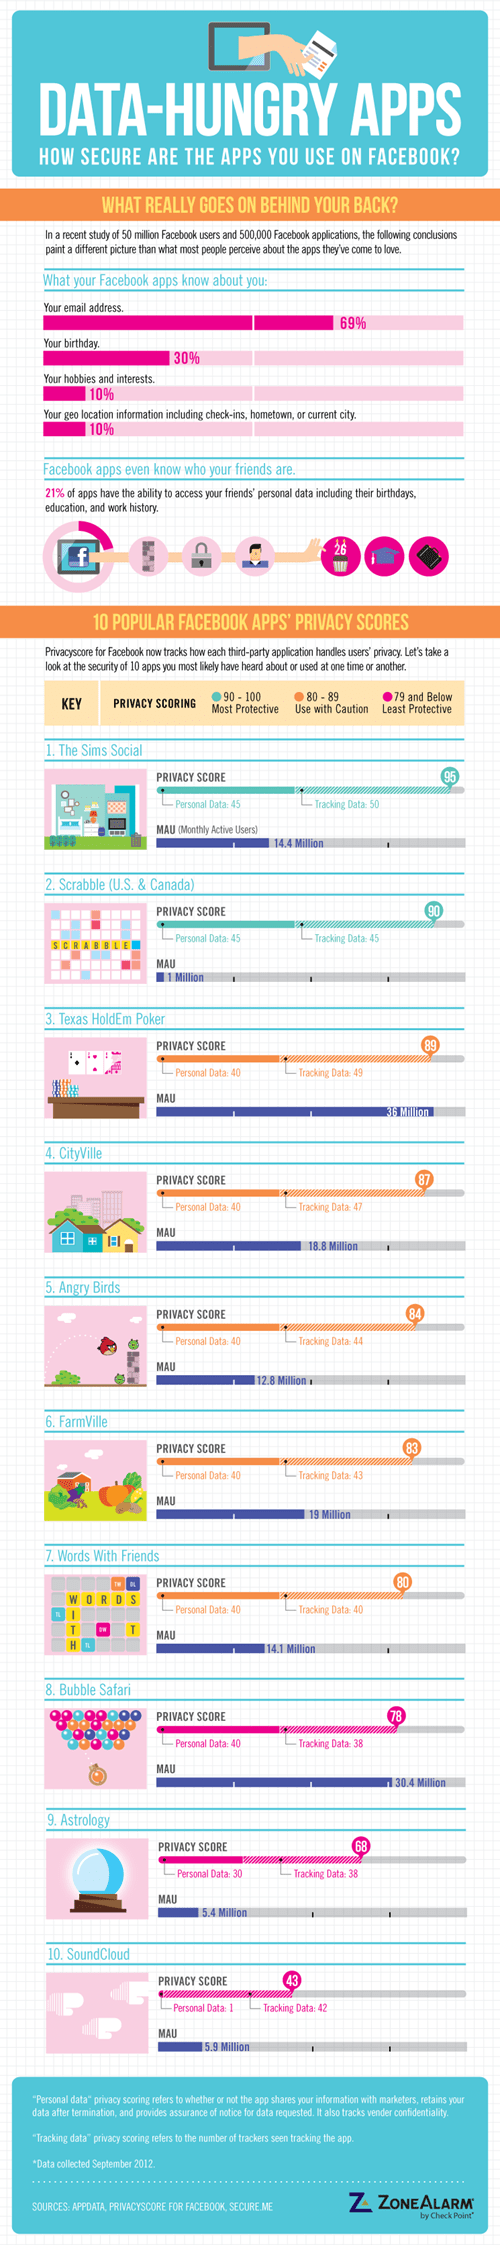 data,hungry,facebook,apps,friends,infographic